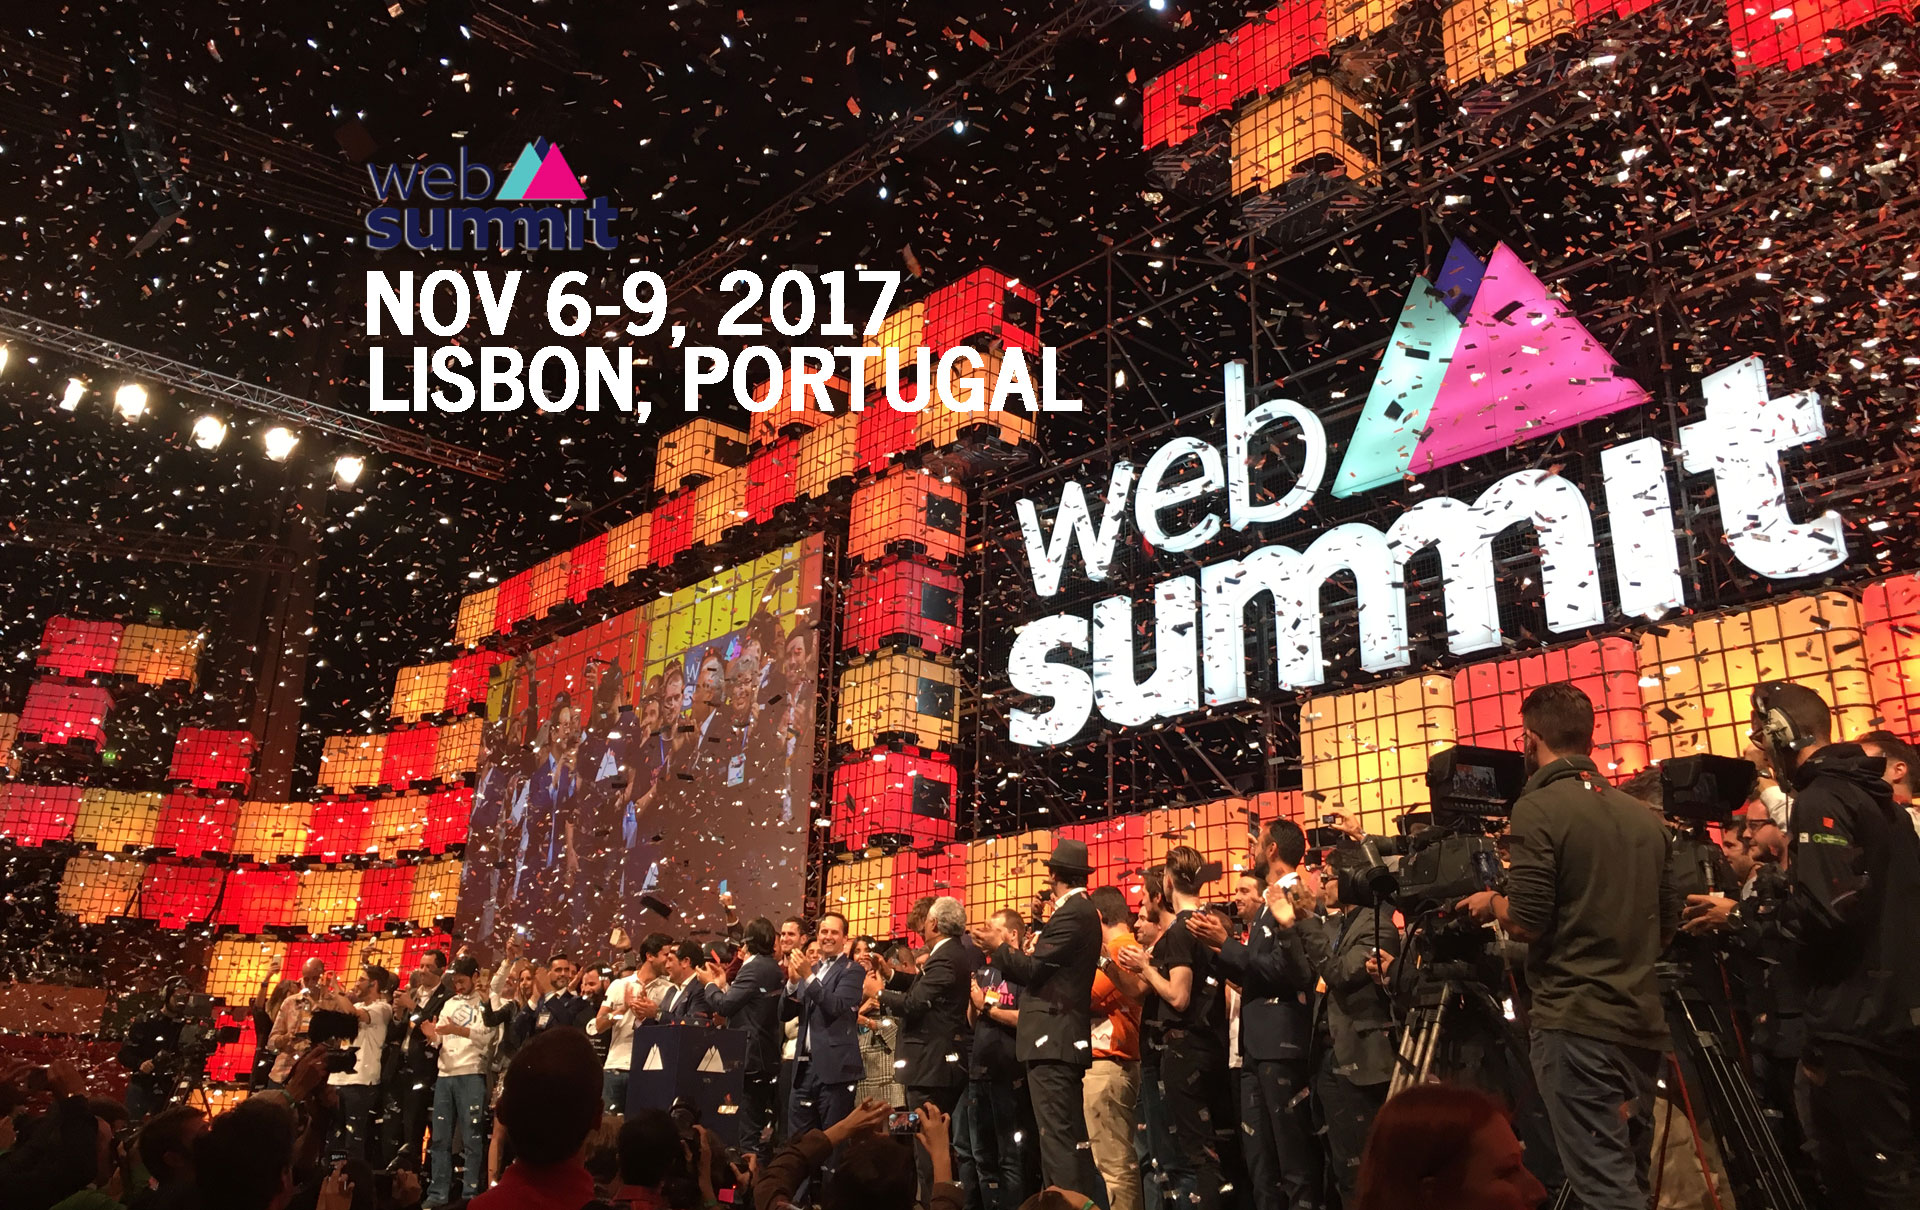 Web Summit 2017 Nov 6-9 Lisbon Portugal